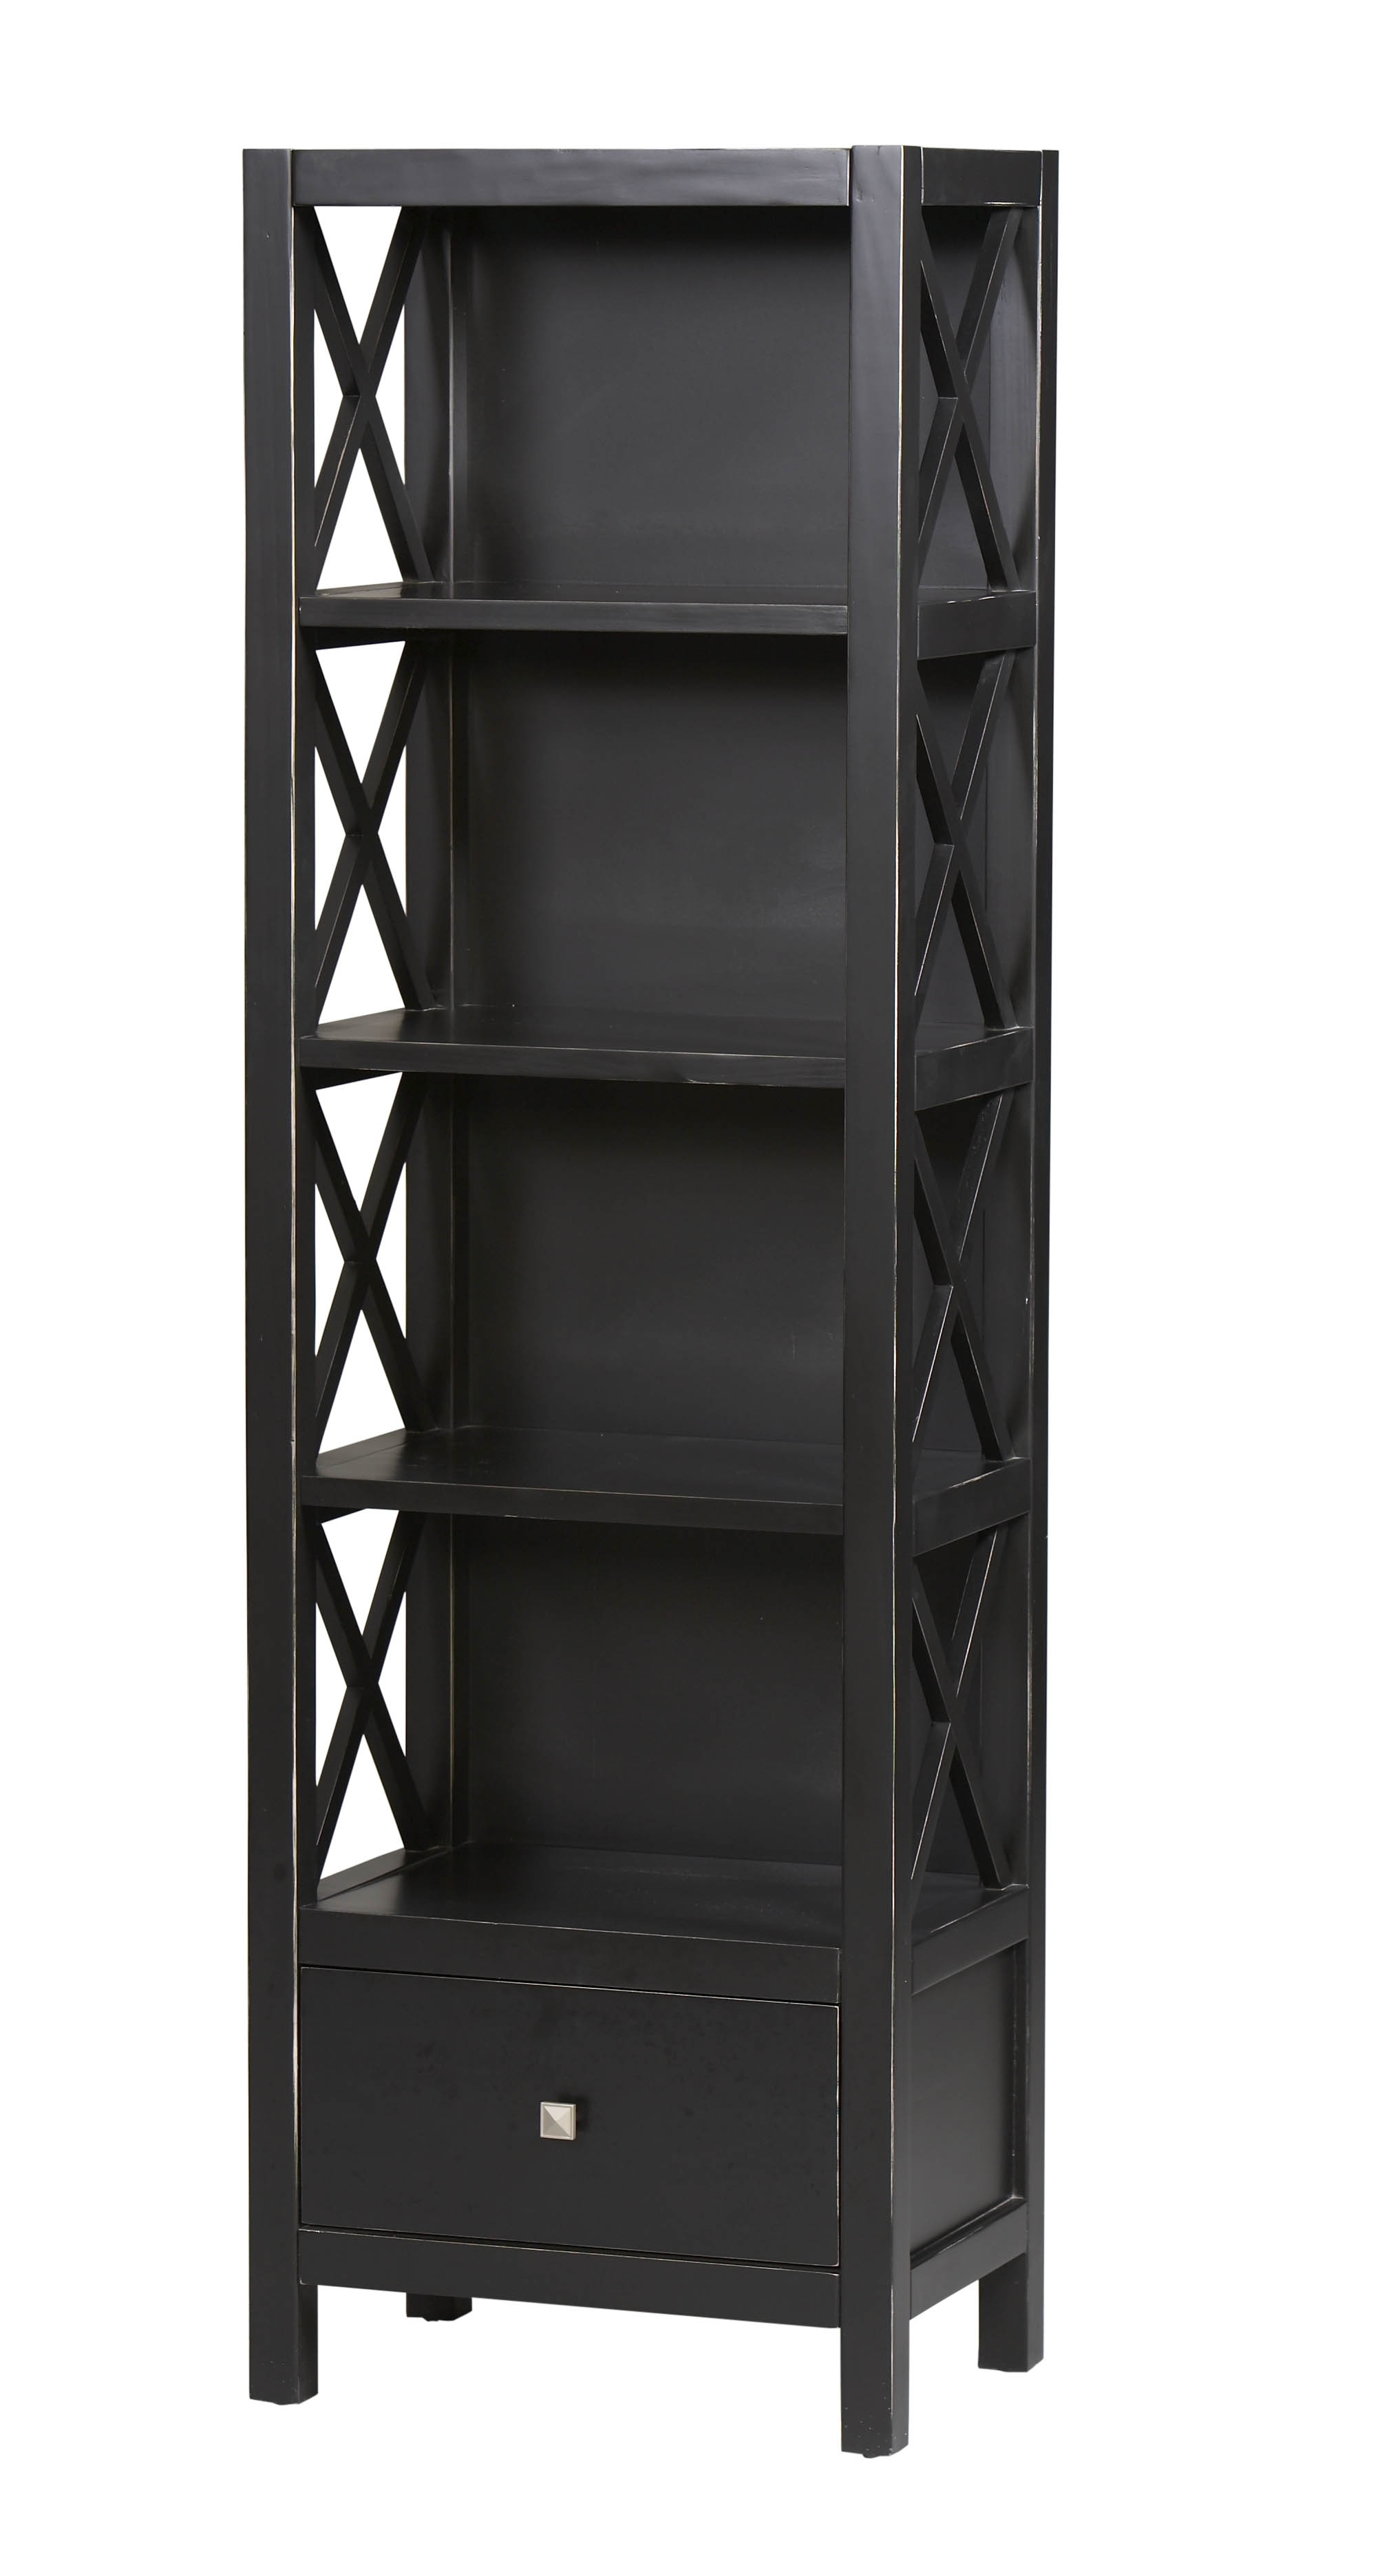 Well Liked Skinny Bookcases In Bookcases Small Narrow With Doors For Spaces Short Tall (View 15 of 15)